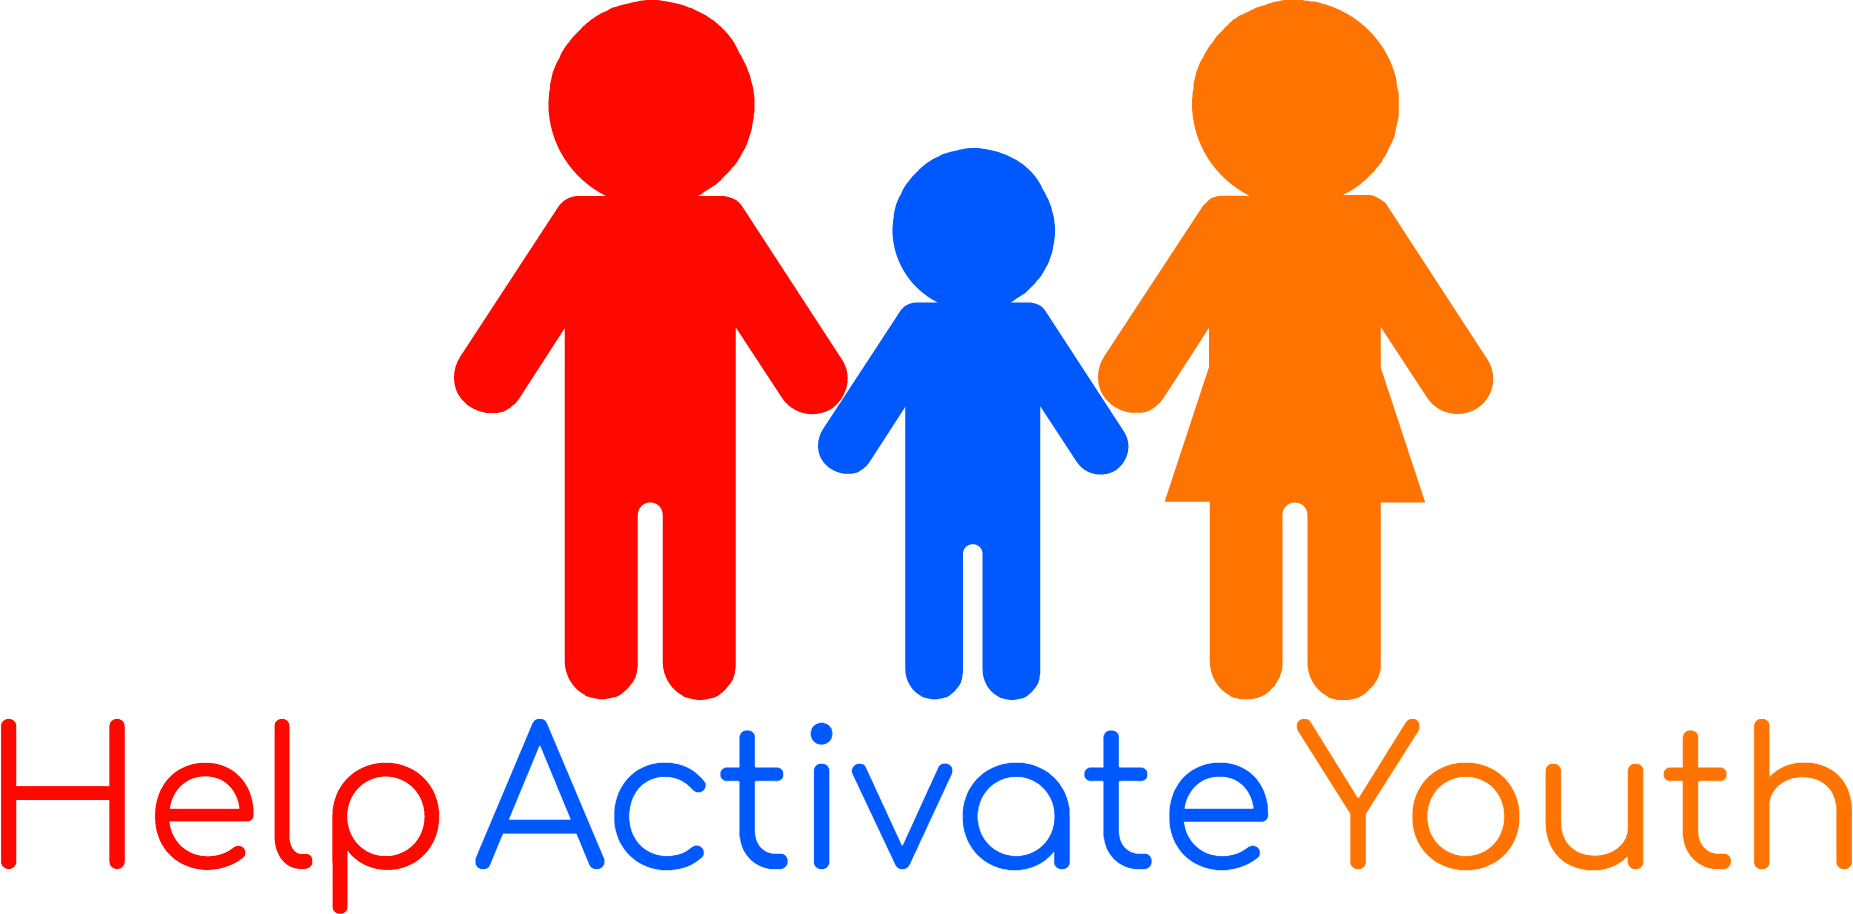 Help Activate Youth